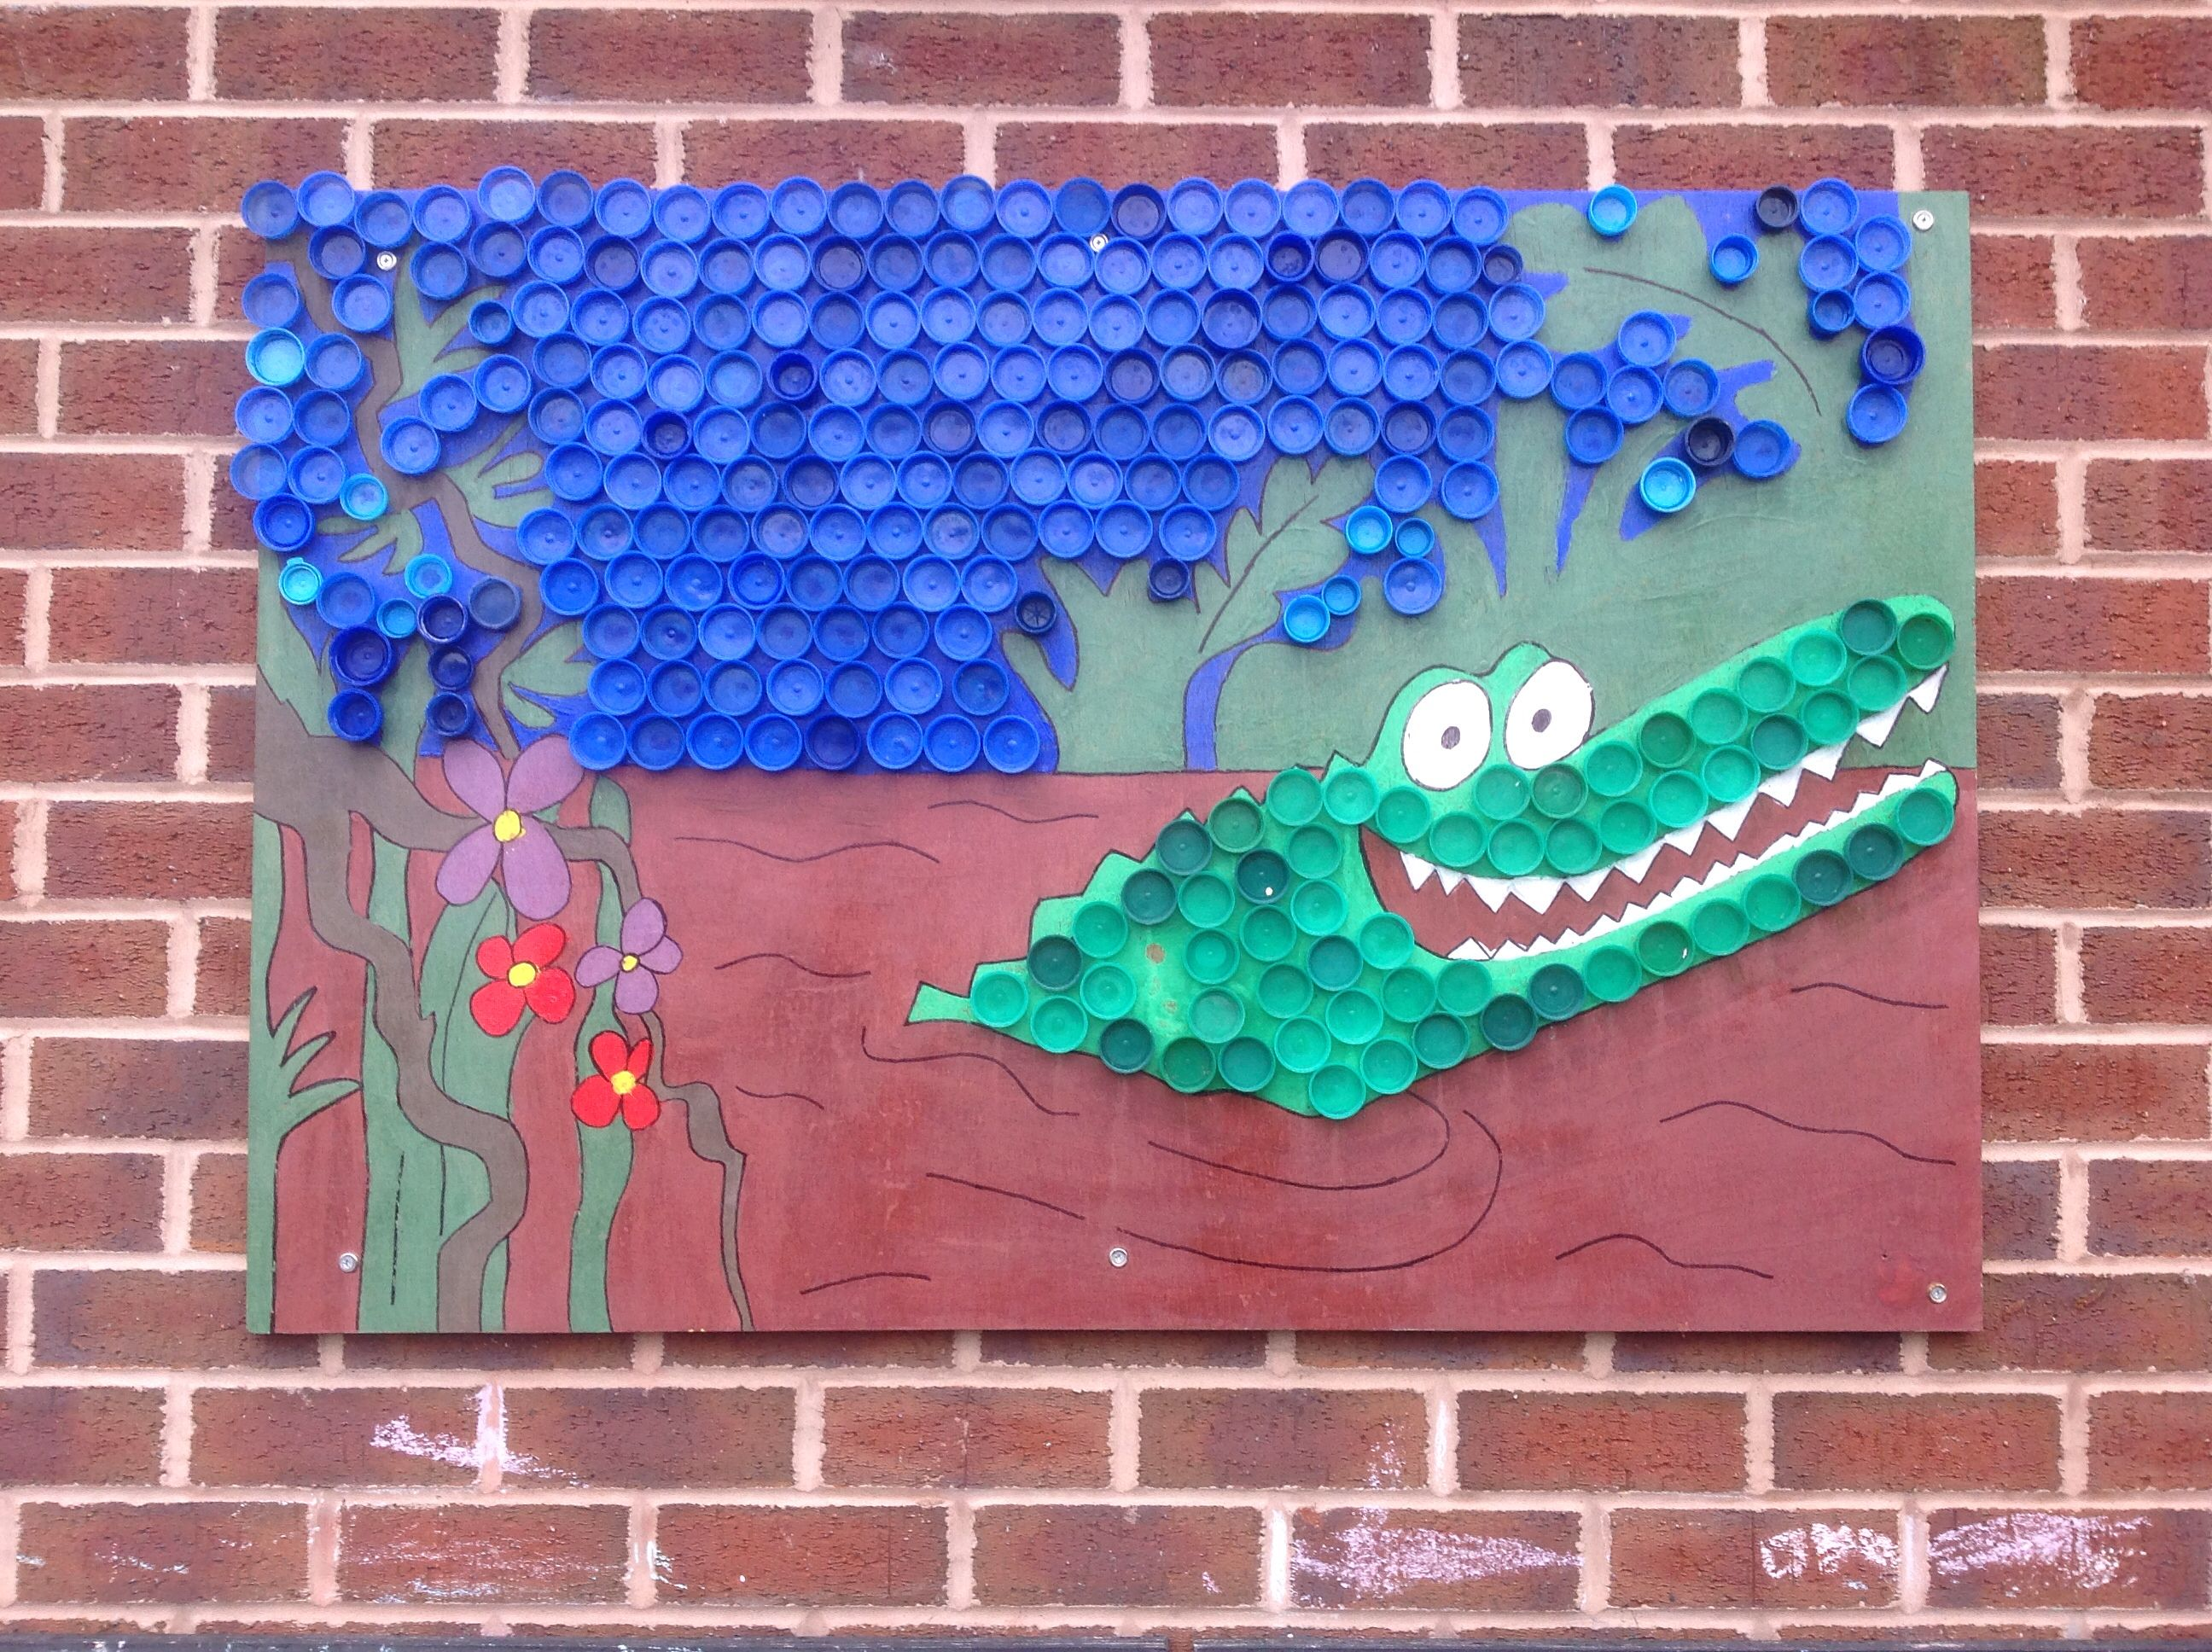 Our Completed Enormous Crocodile Art Project With Images